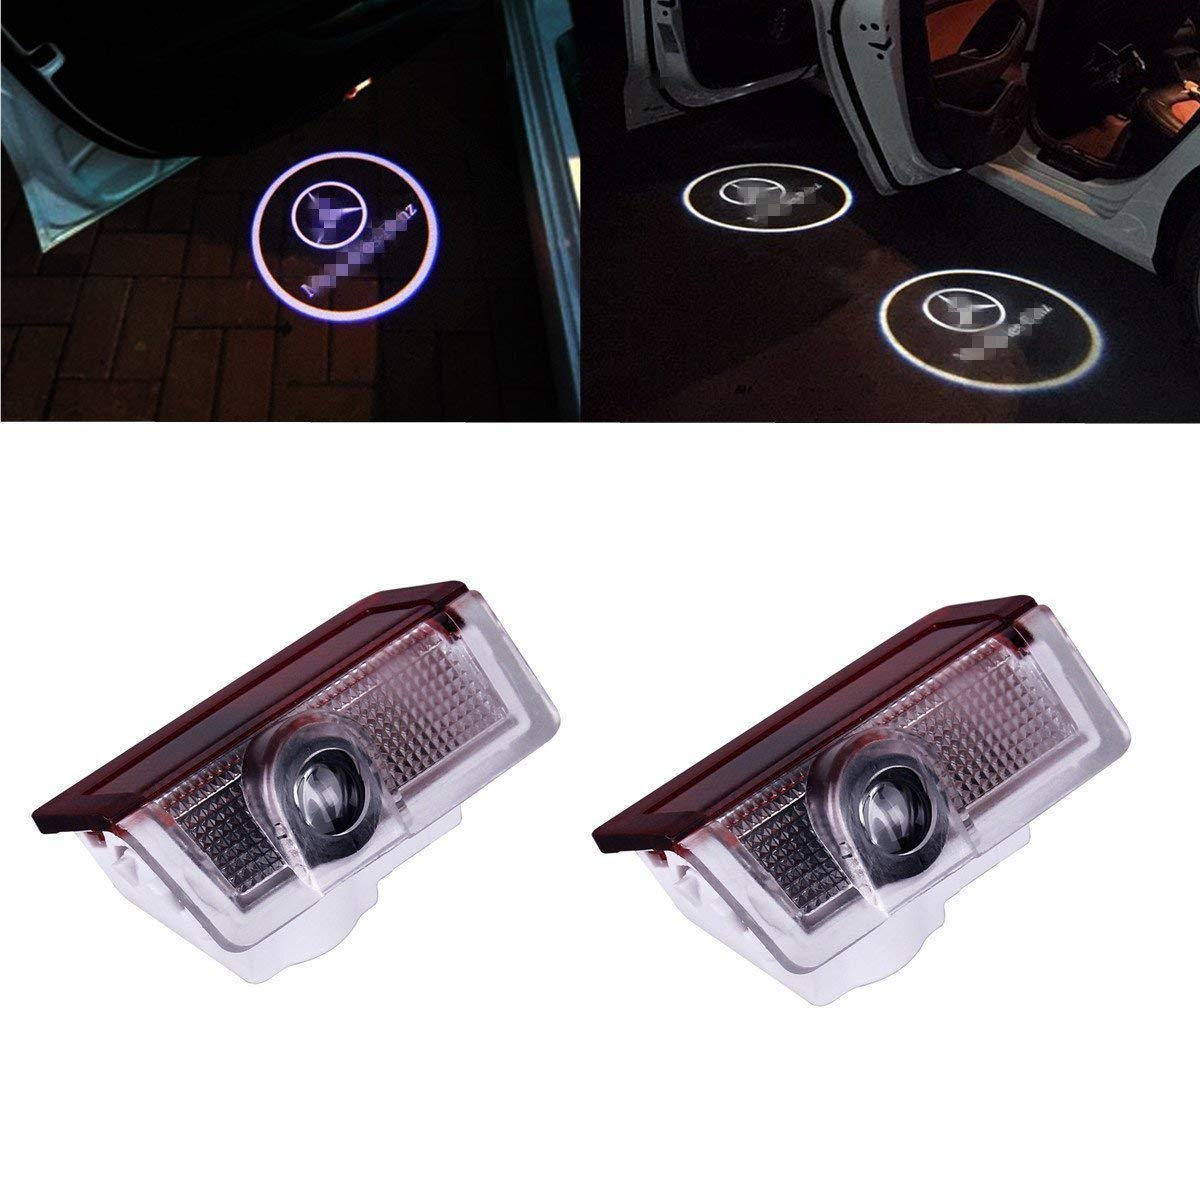 SOONDAR for Ford Car Door Light Projector 2pcs Upgraded Universal Sensor Wireless Car Projection Cree LED Projector Door Shadow Light Welcome Light